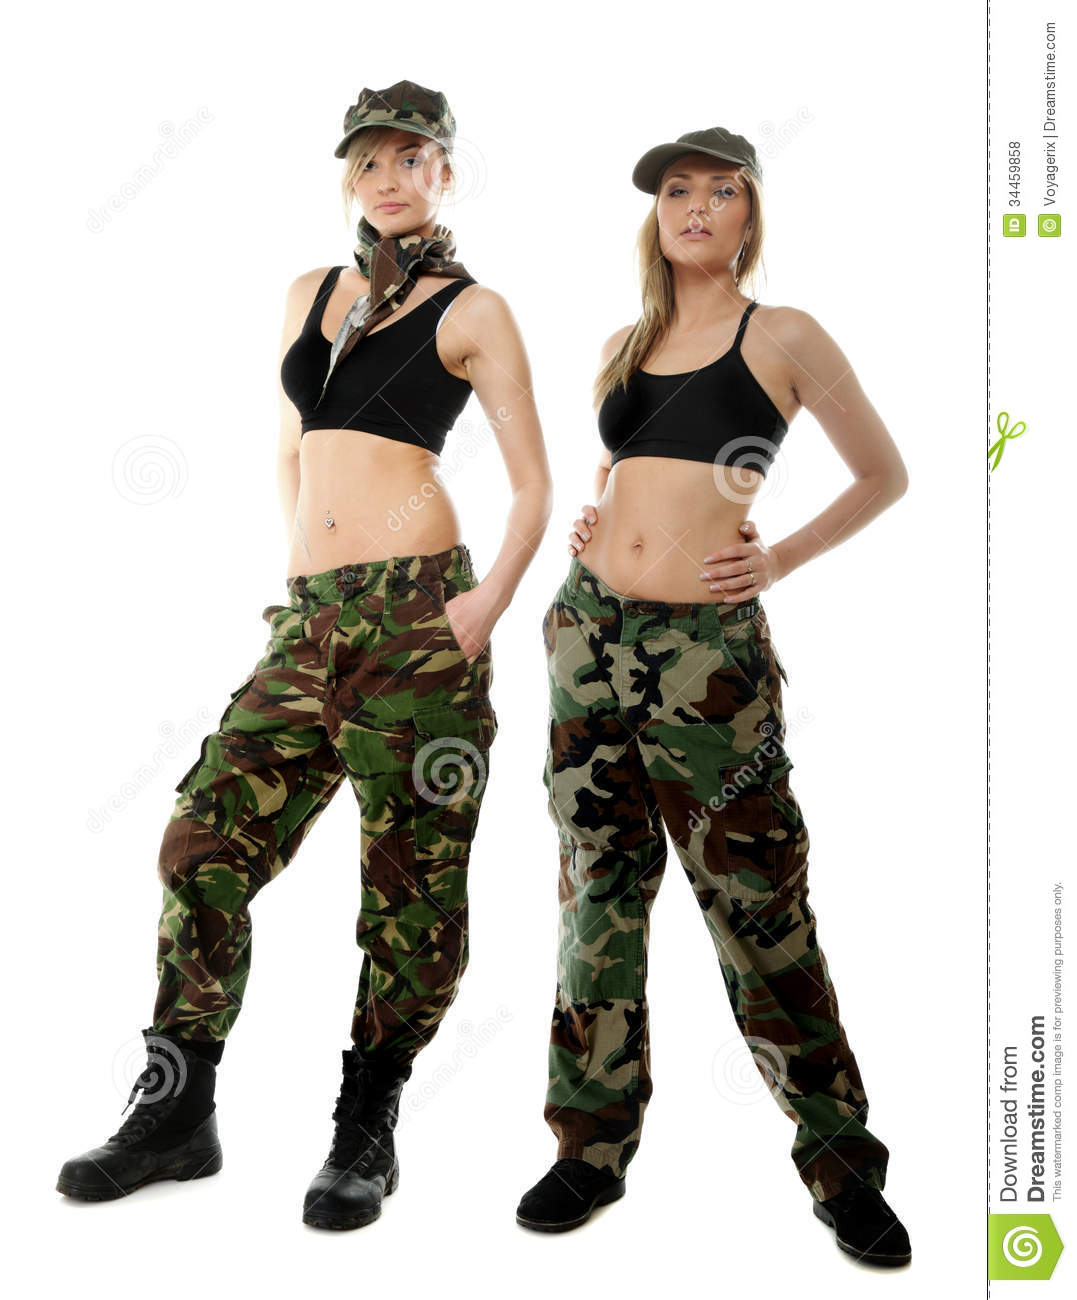 New fashion Brand womens clothing Trousers camouflage pencil pants for women Military uniform Plus size camouflage